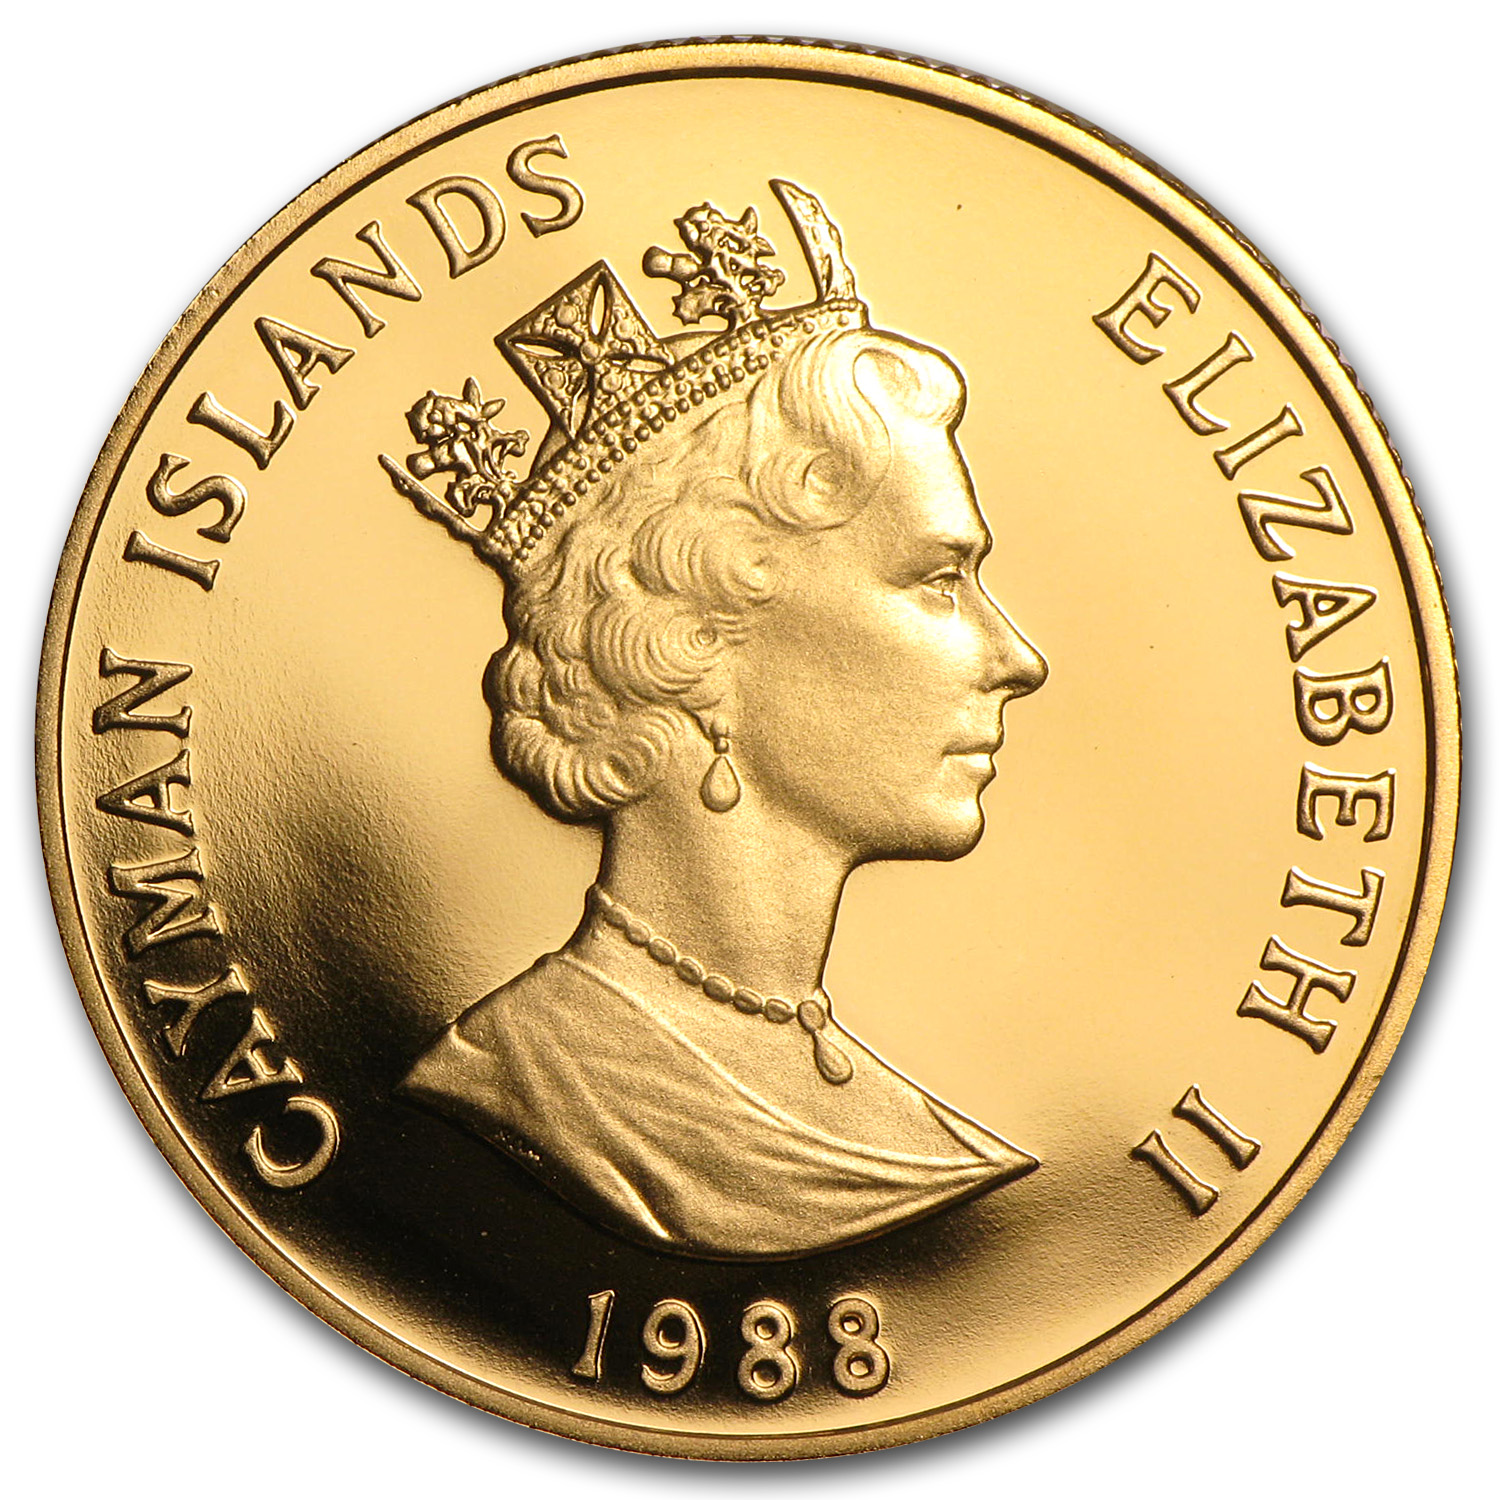 1988 Cayman Islands Proof Gold 100 Dollars Columbus